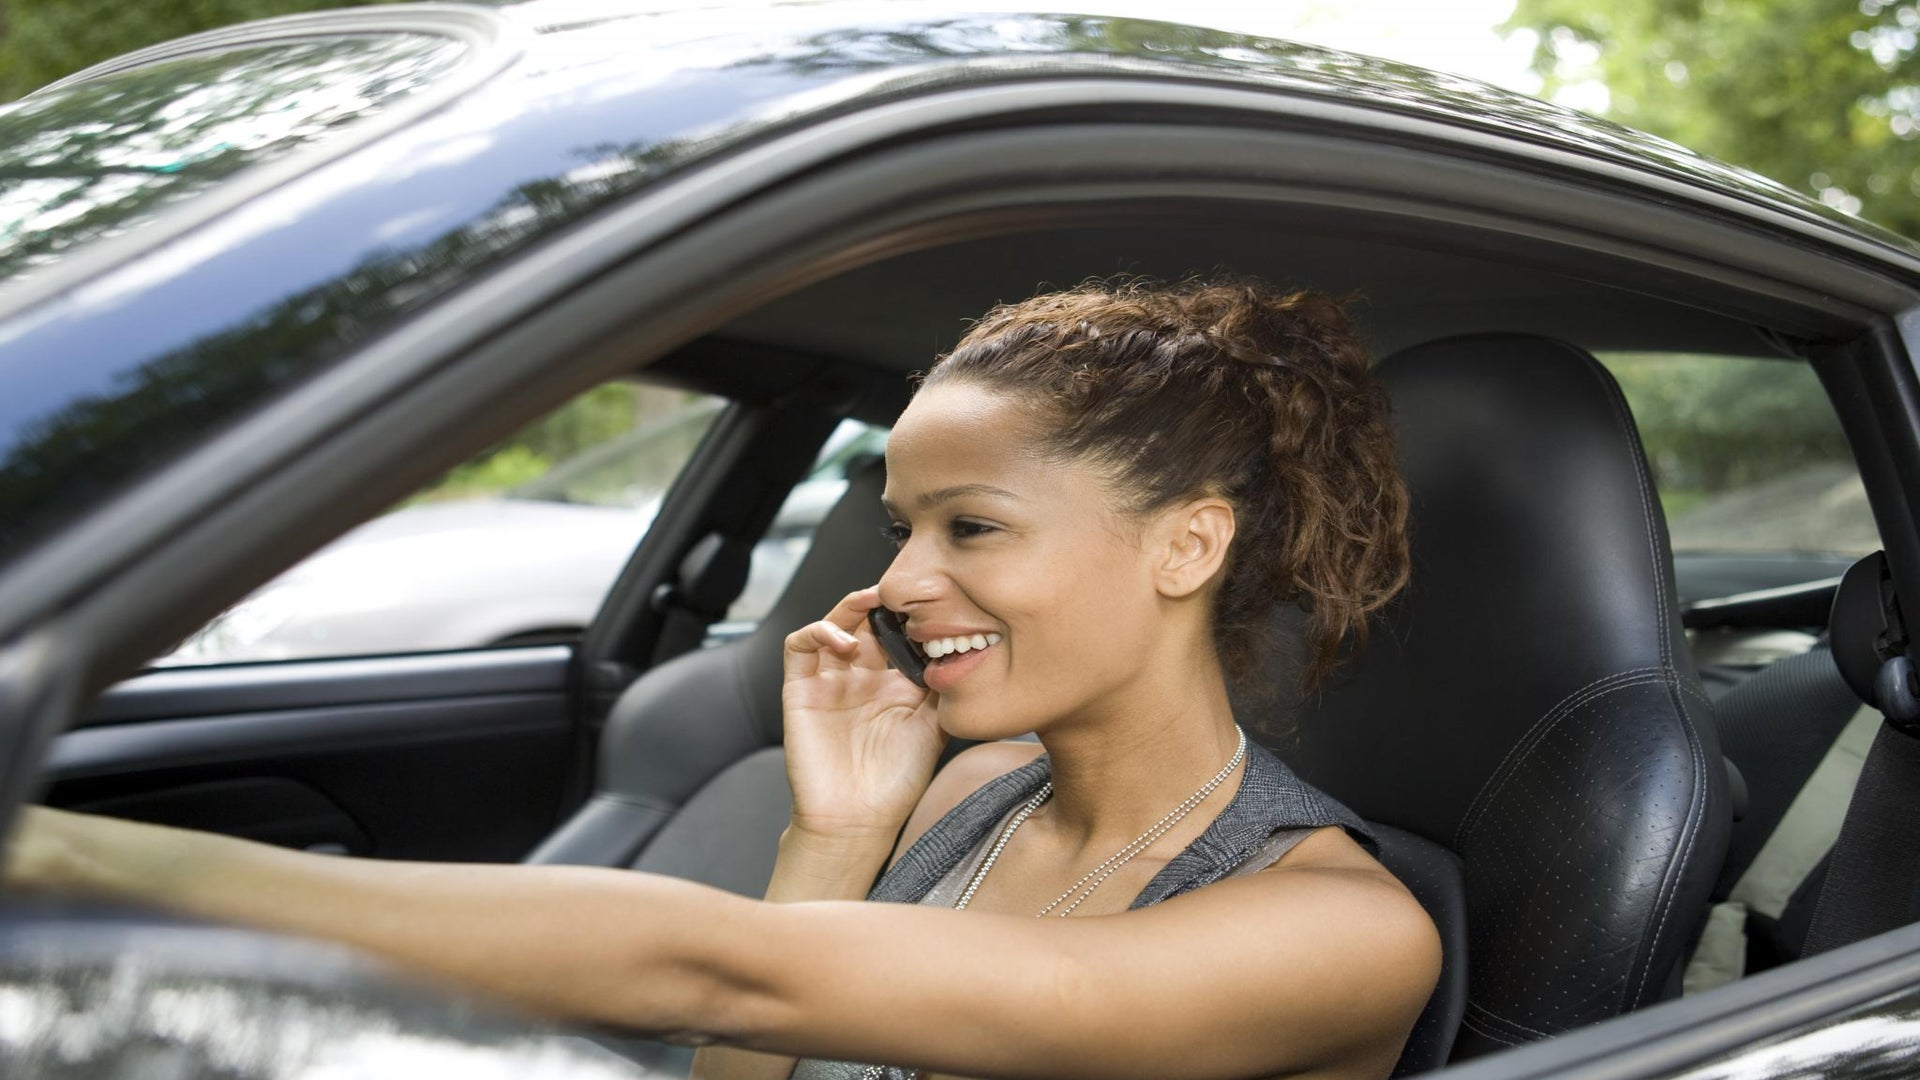 ESSENCE Poll: Be Honest: What Are Your Cellphone Habits While Driving?